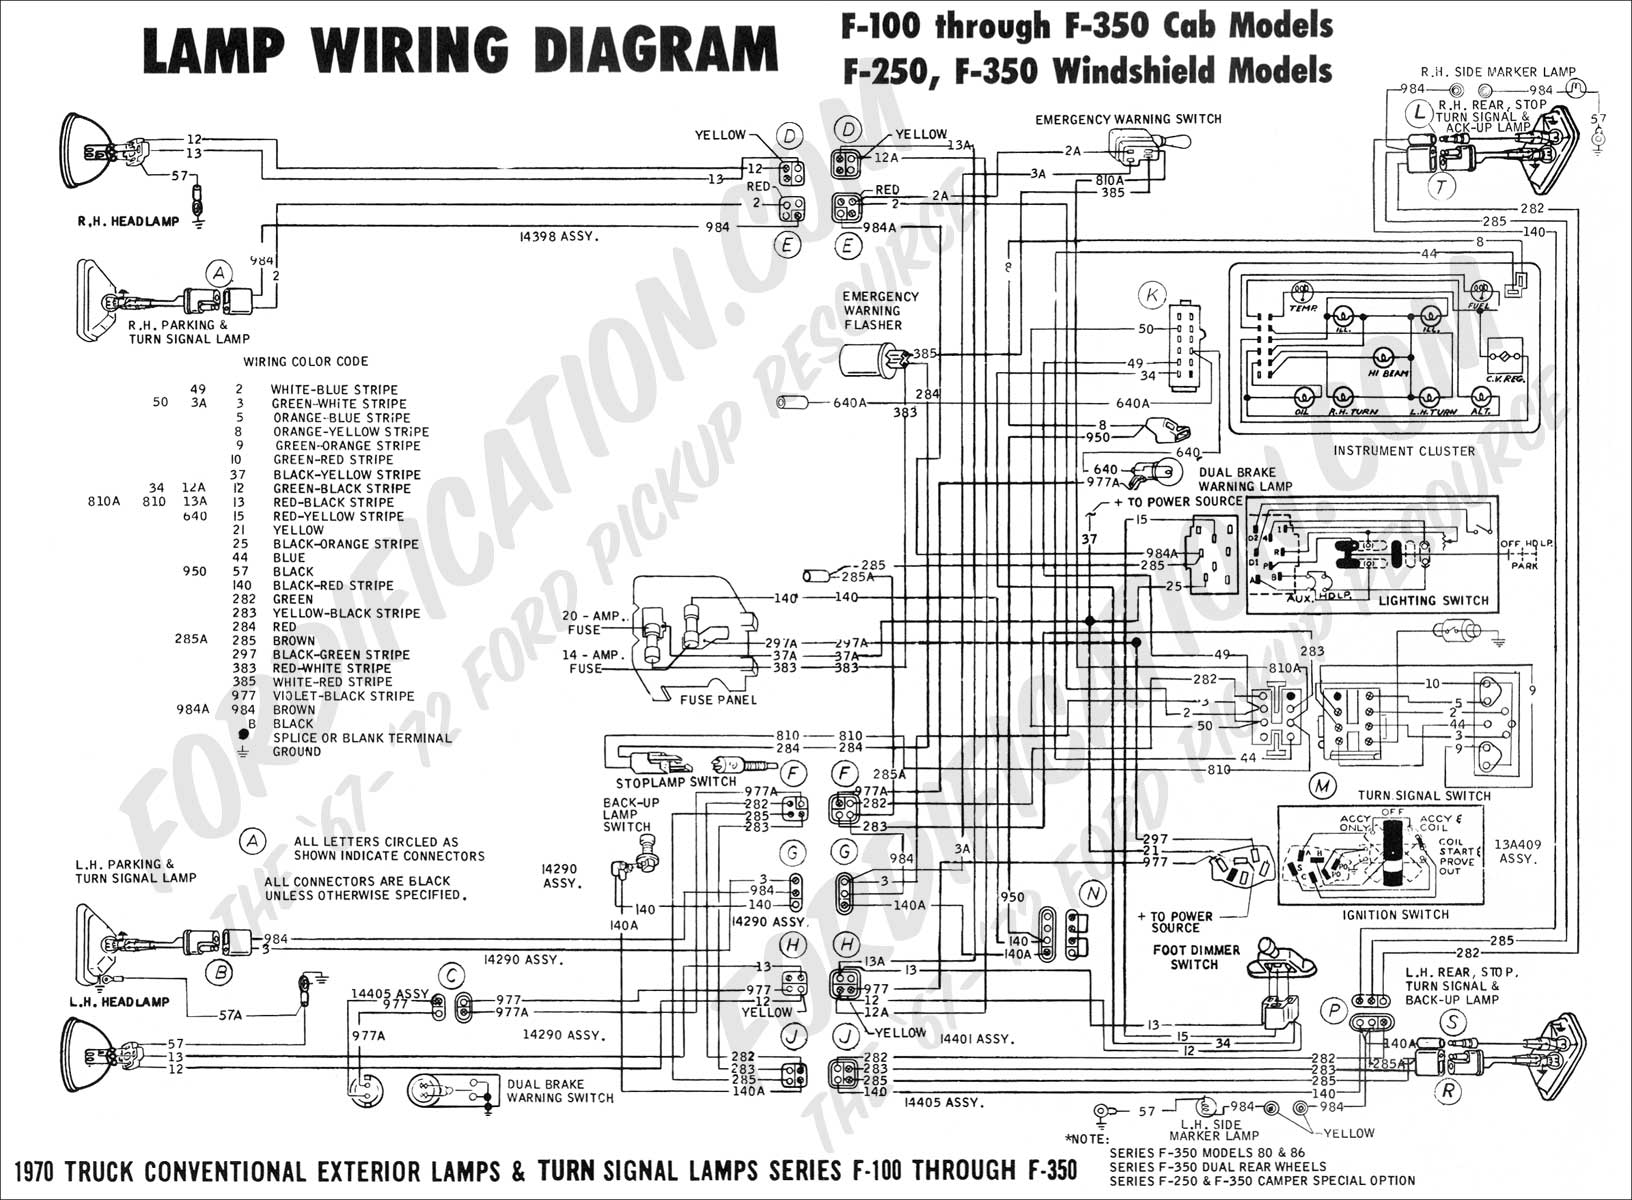 1975 ford truck wiring diagrams just wiring data rh ag skiphire co uk 1975  dodge w100 wiring diagram 1975 dodge ecu wiring diagram